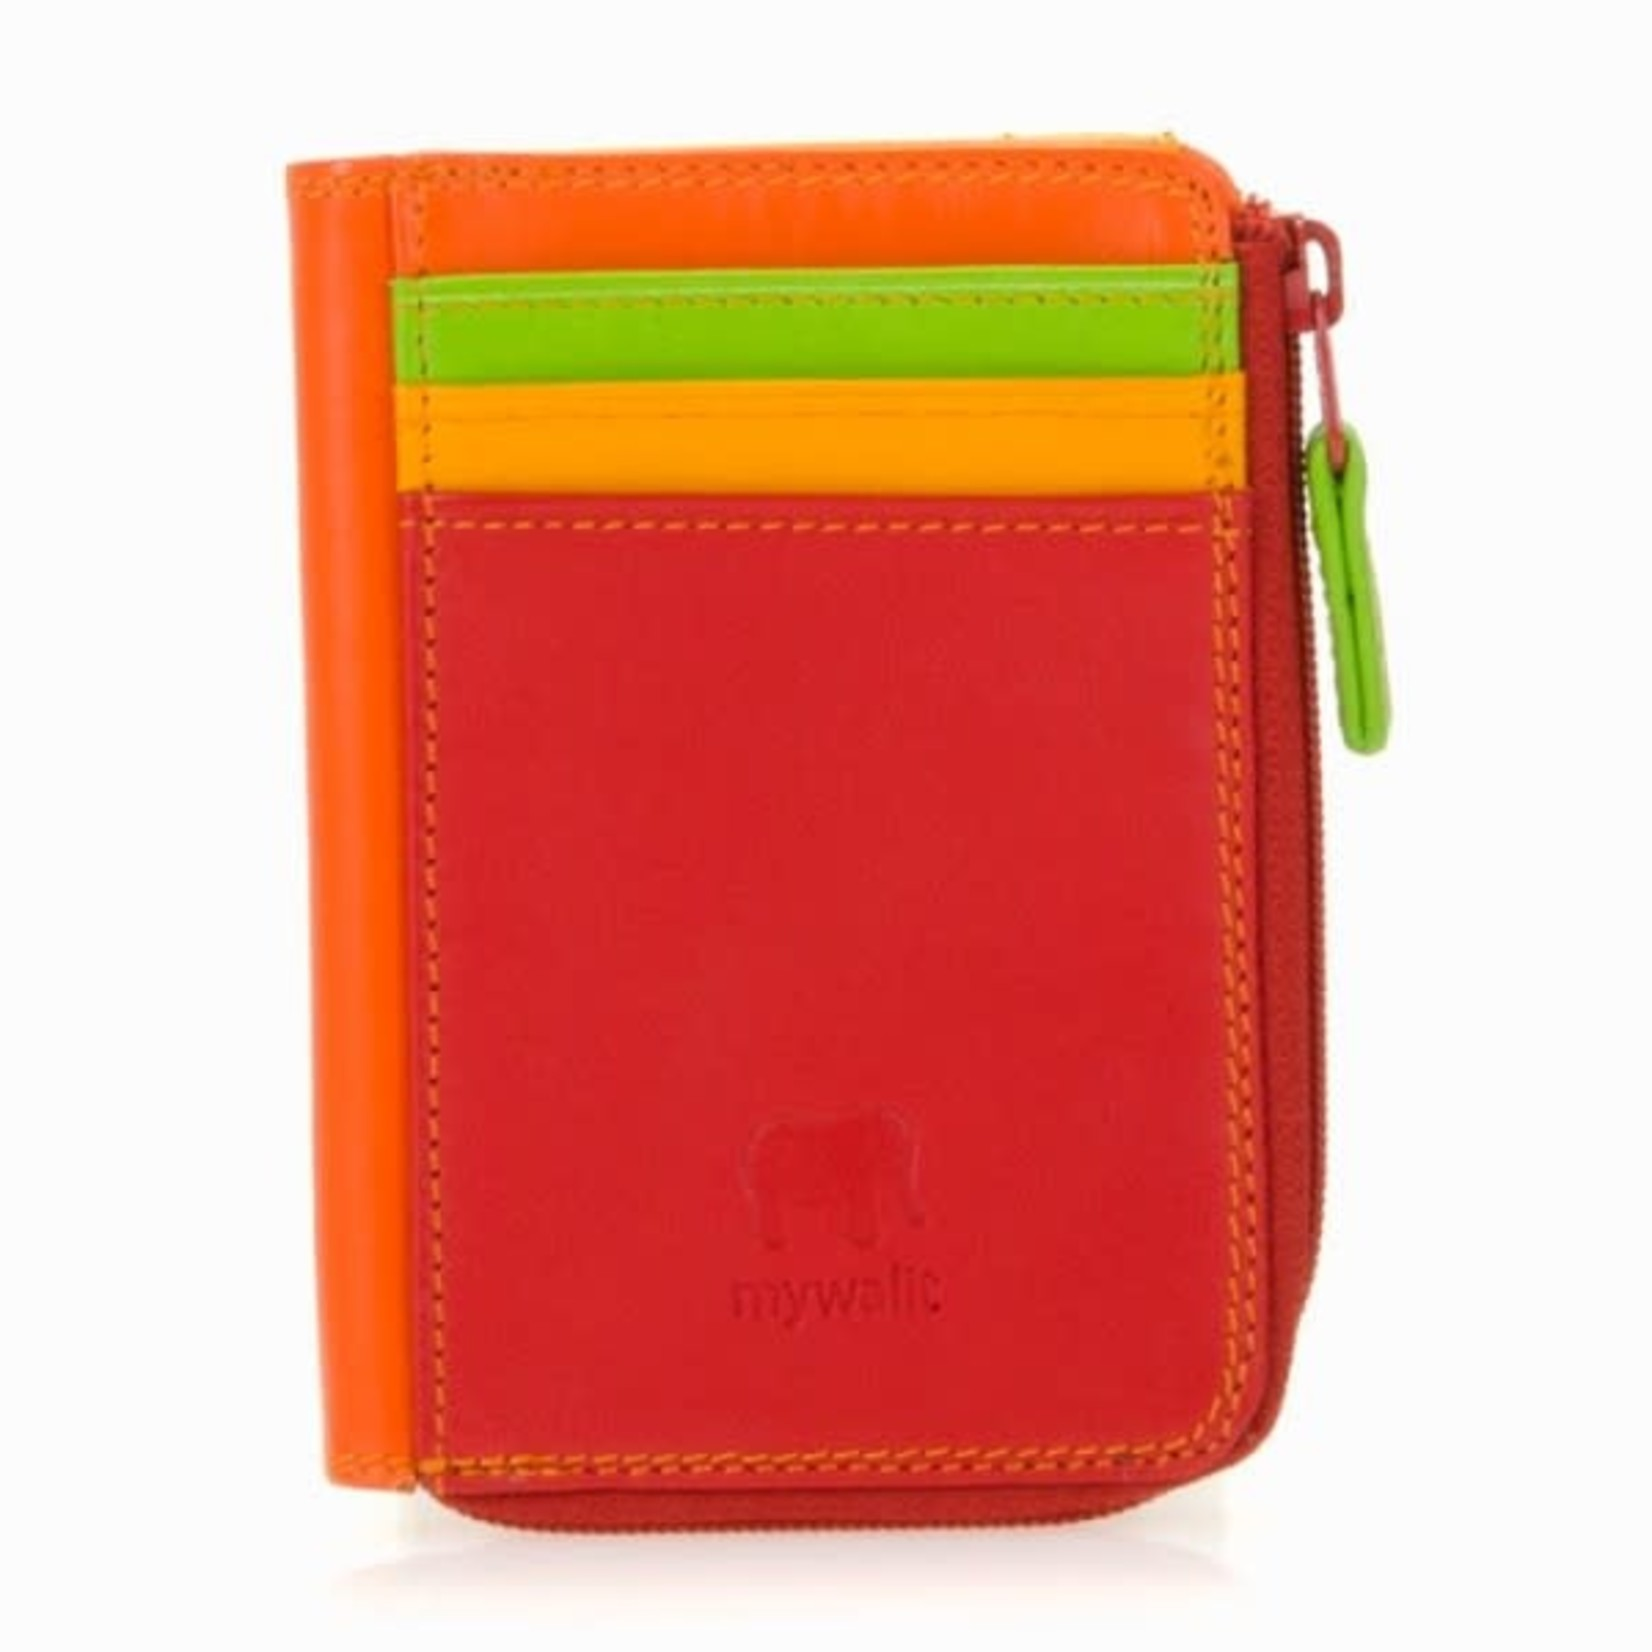 MYWALIT ZIP PURSE/ID HOLDER